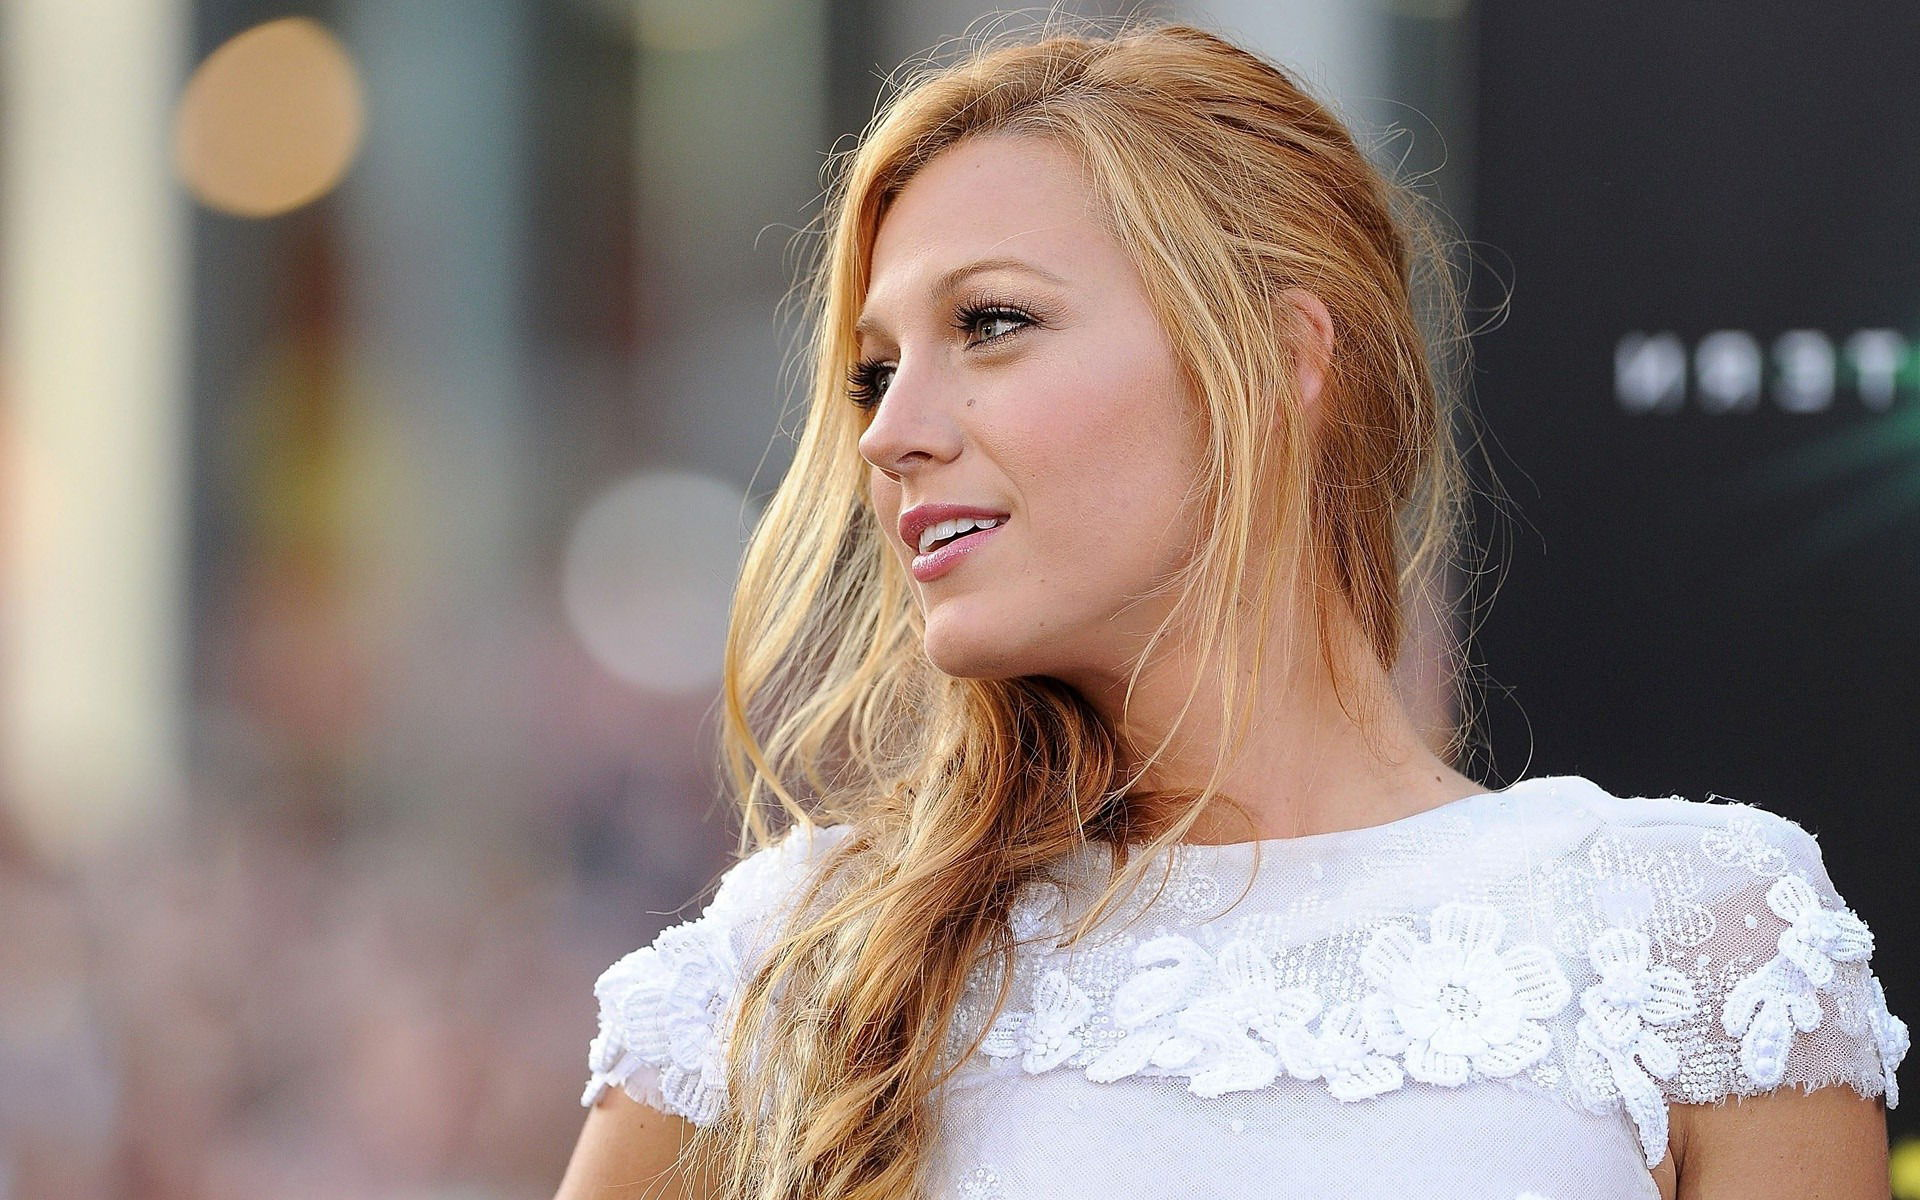 beautiful-actress-blake-lively-hd-wallpapers-free-download-amazing-wallpapers-of-blake-lively